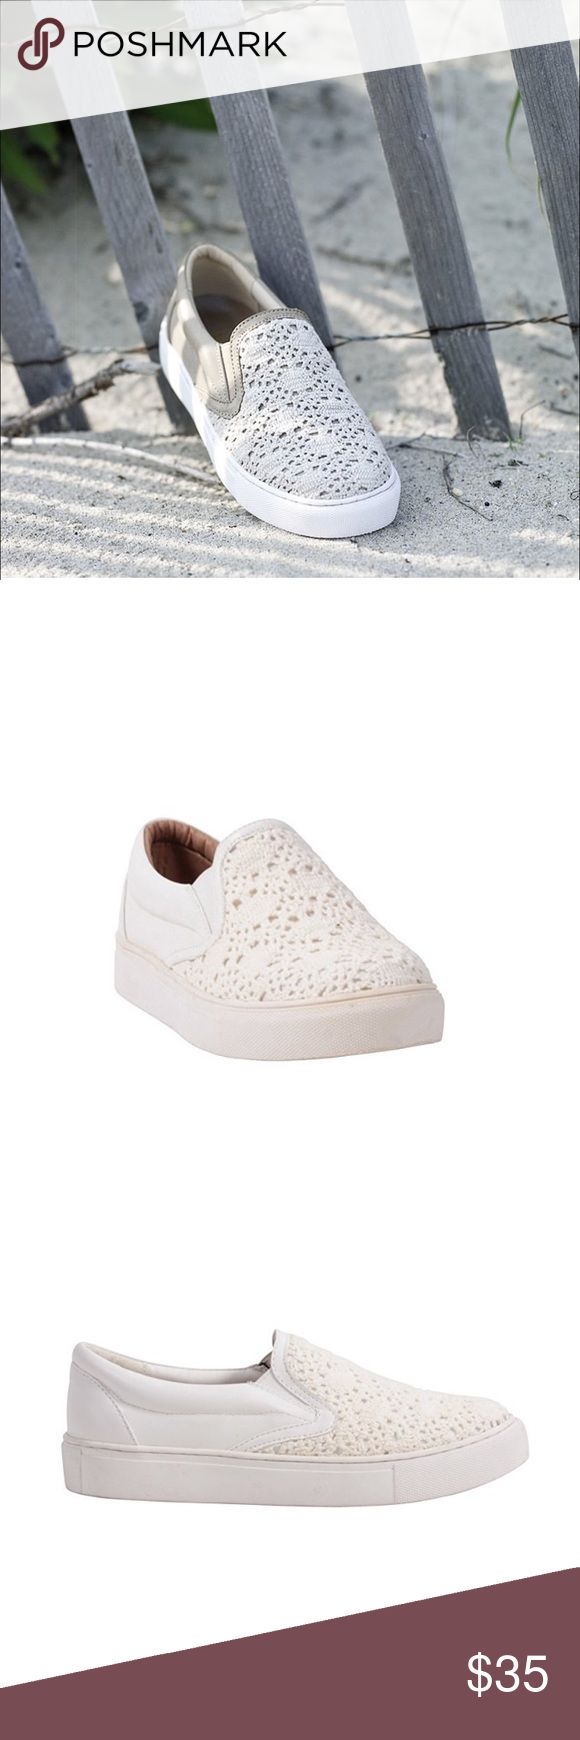 White Crochet Lace Slip On Sneakers Espadrilles Lace white slip on sneaker features: a macramé upper. These sneakers are a perfect shoe, for a multi-seasonal vibe that flatters every woman. Pair these sneakers up with jeans for a more casual look, dress pants for a smart casual look or if you're looking for a flirty and girly look, put on a skater skirt or flowy dress. Boutique Shoes Espadrilles